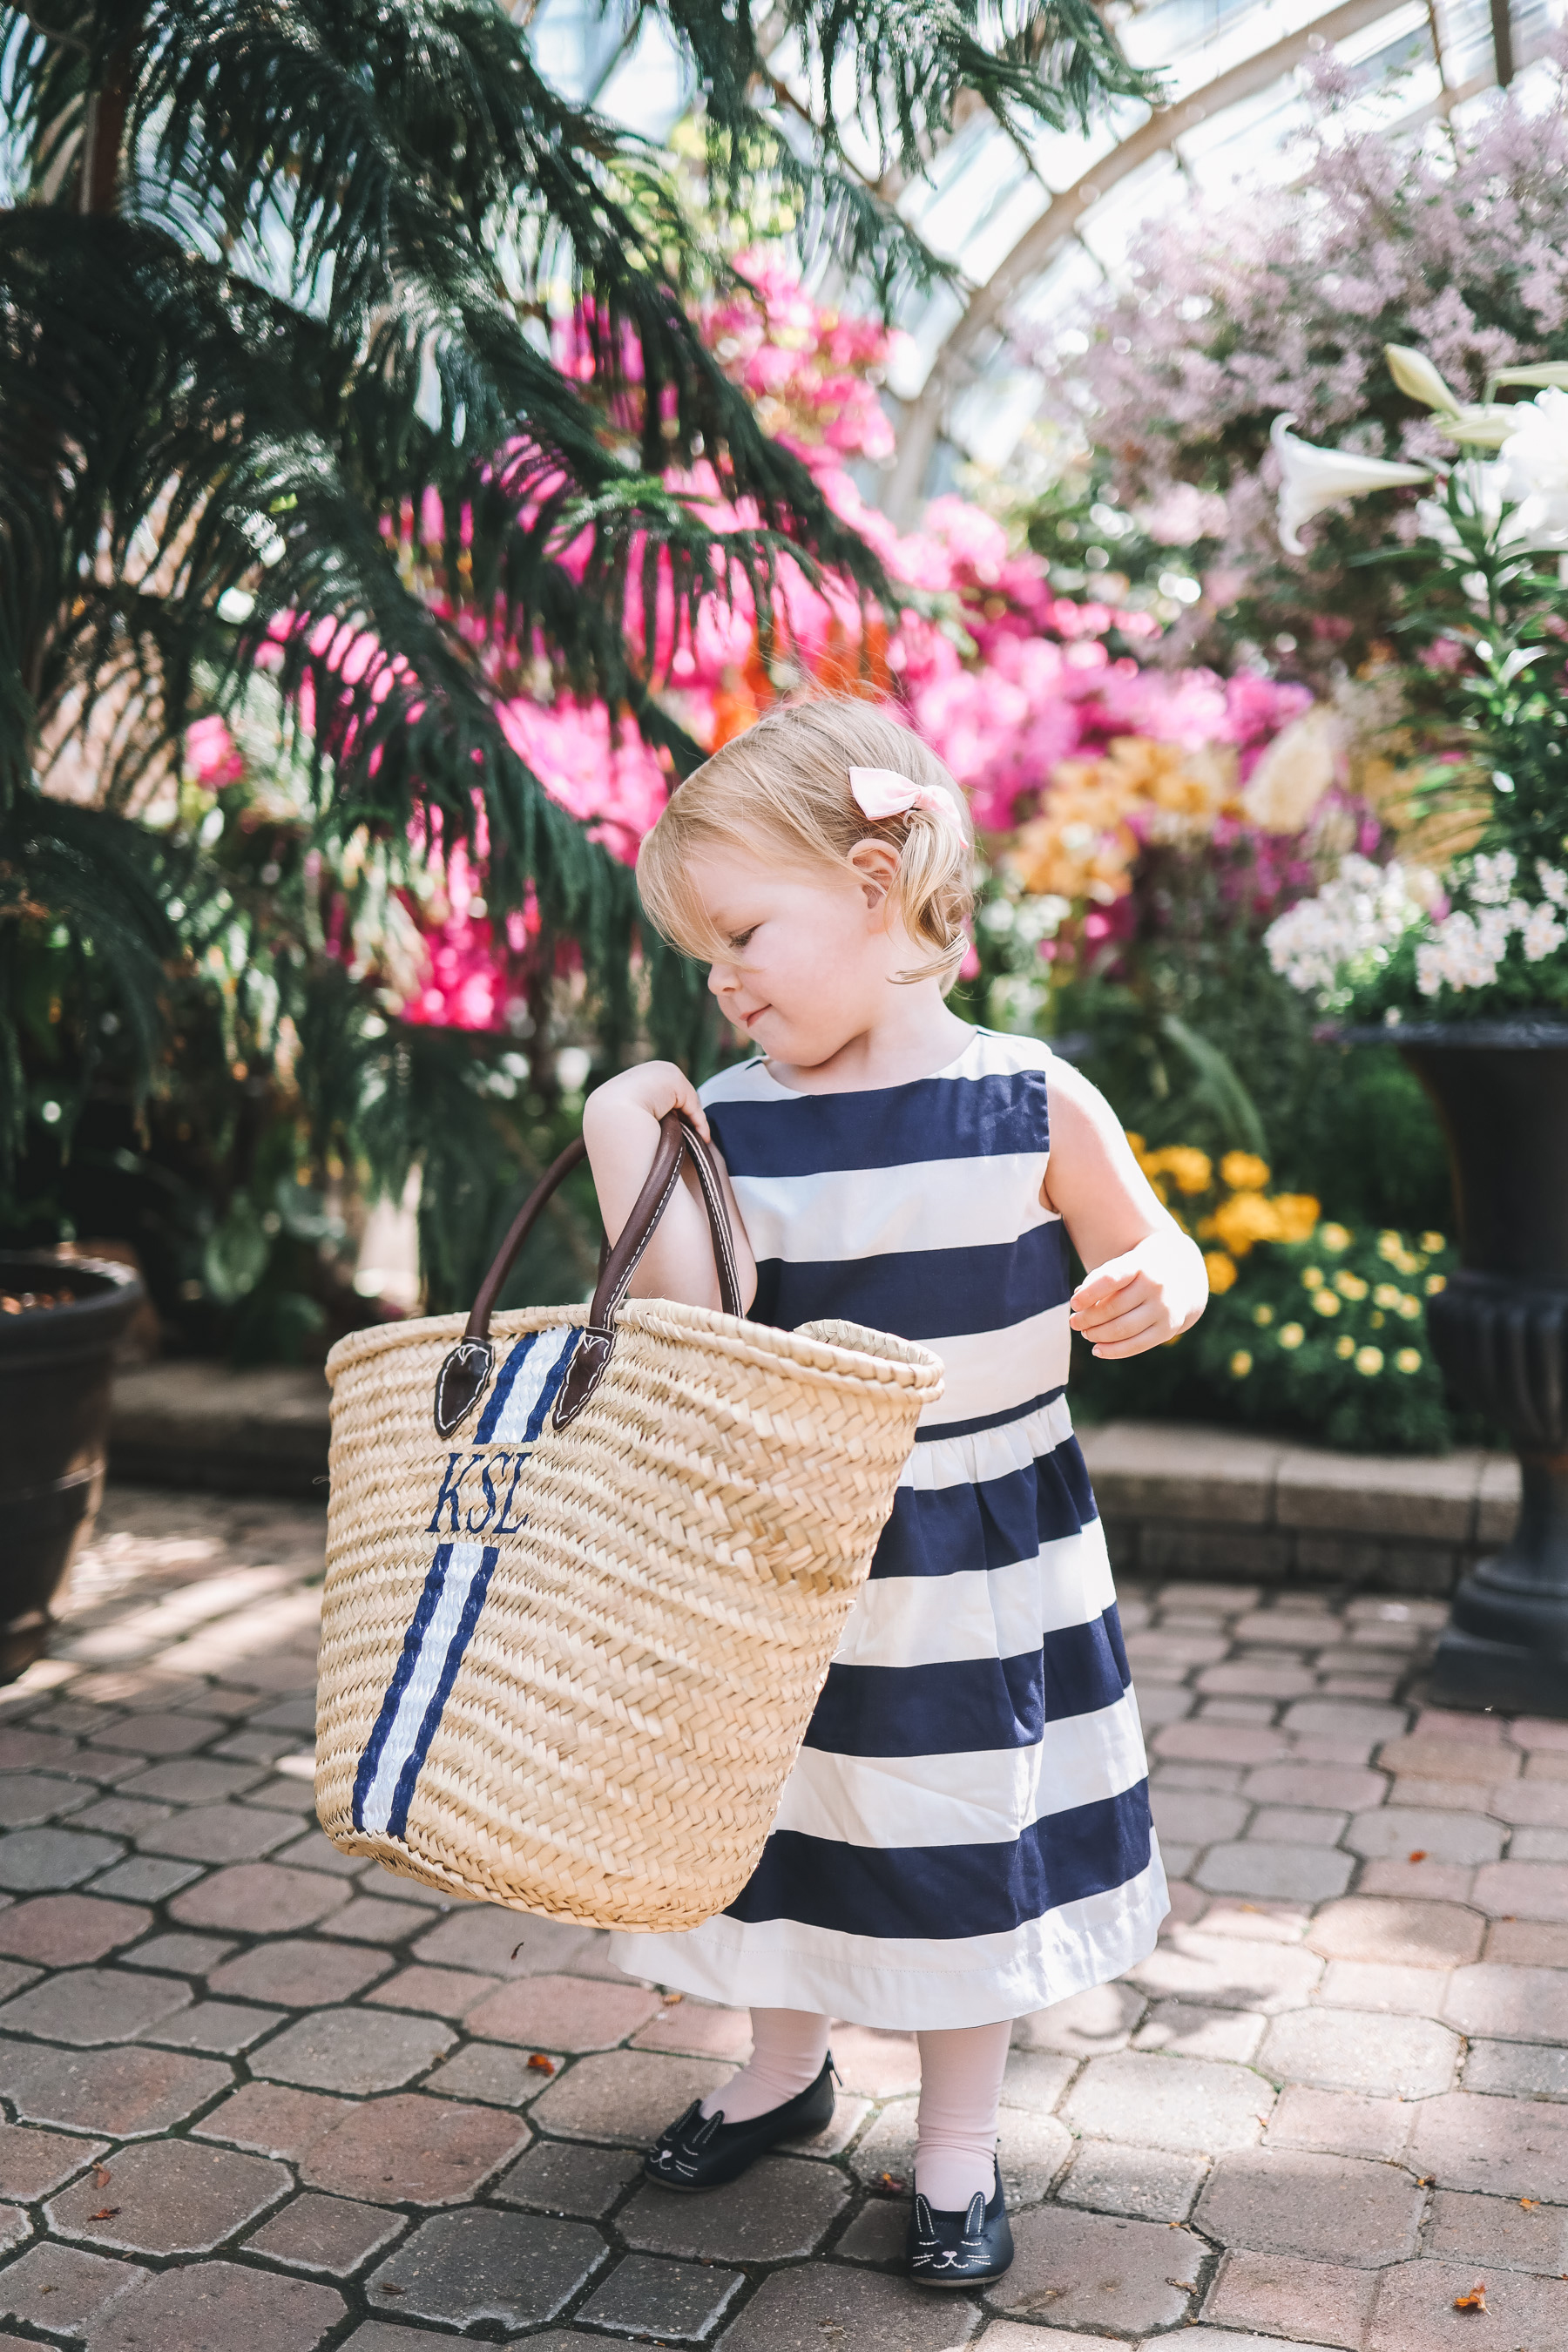 Emma's outfit: J.Crew Factory Navy Striped Dress / Mark & Graham Hand-Painted Straw Tote c/o / Newer Gap Bunny Flats